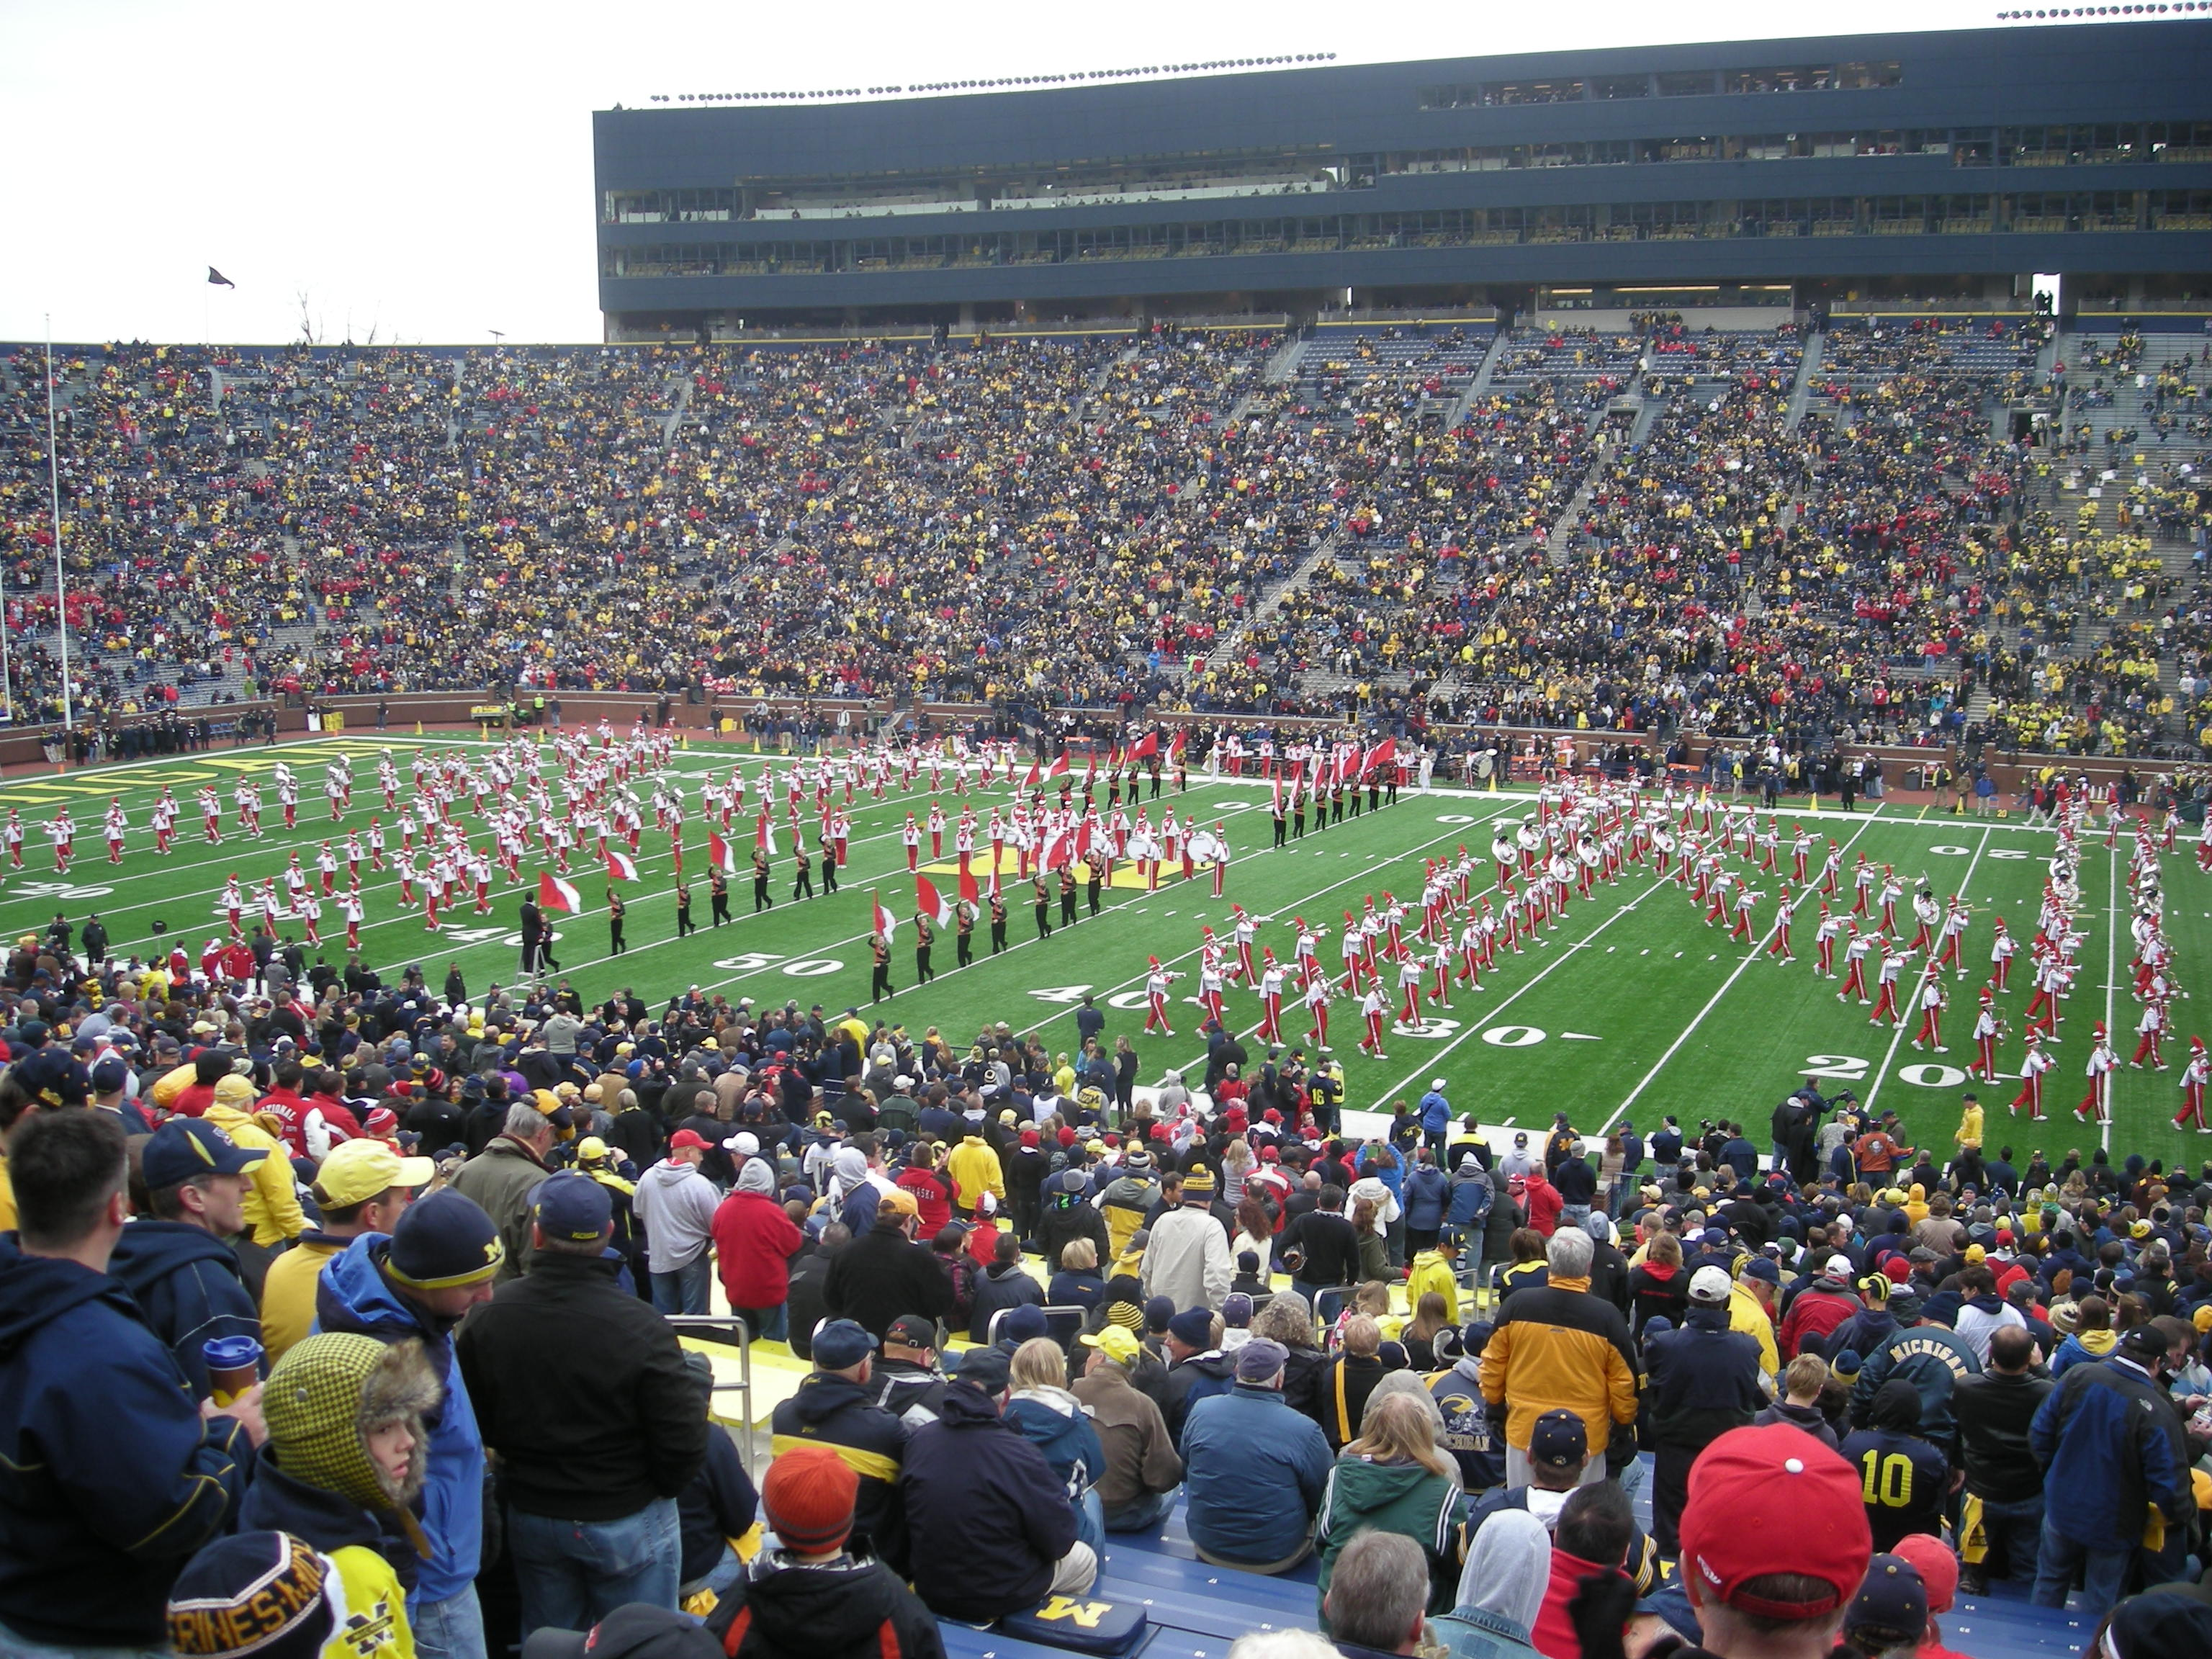 University of Nebraska Cornhusker Marching Band